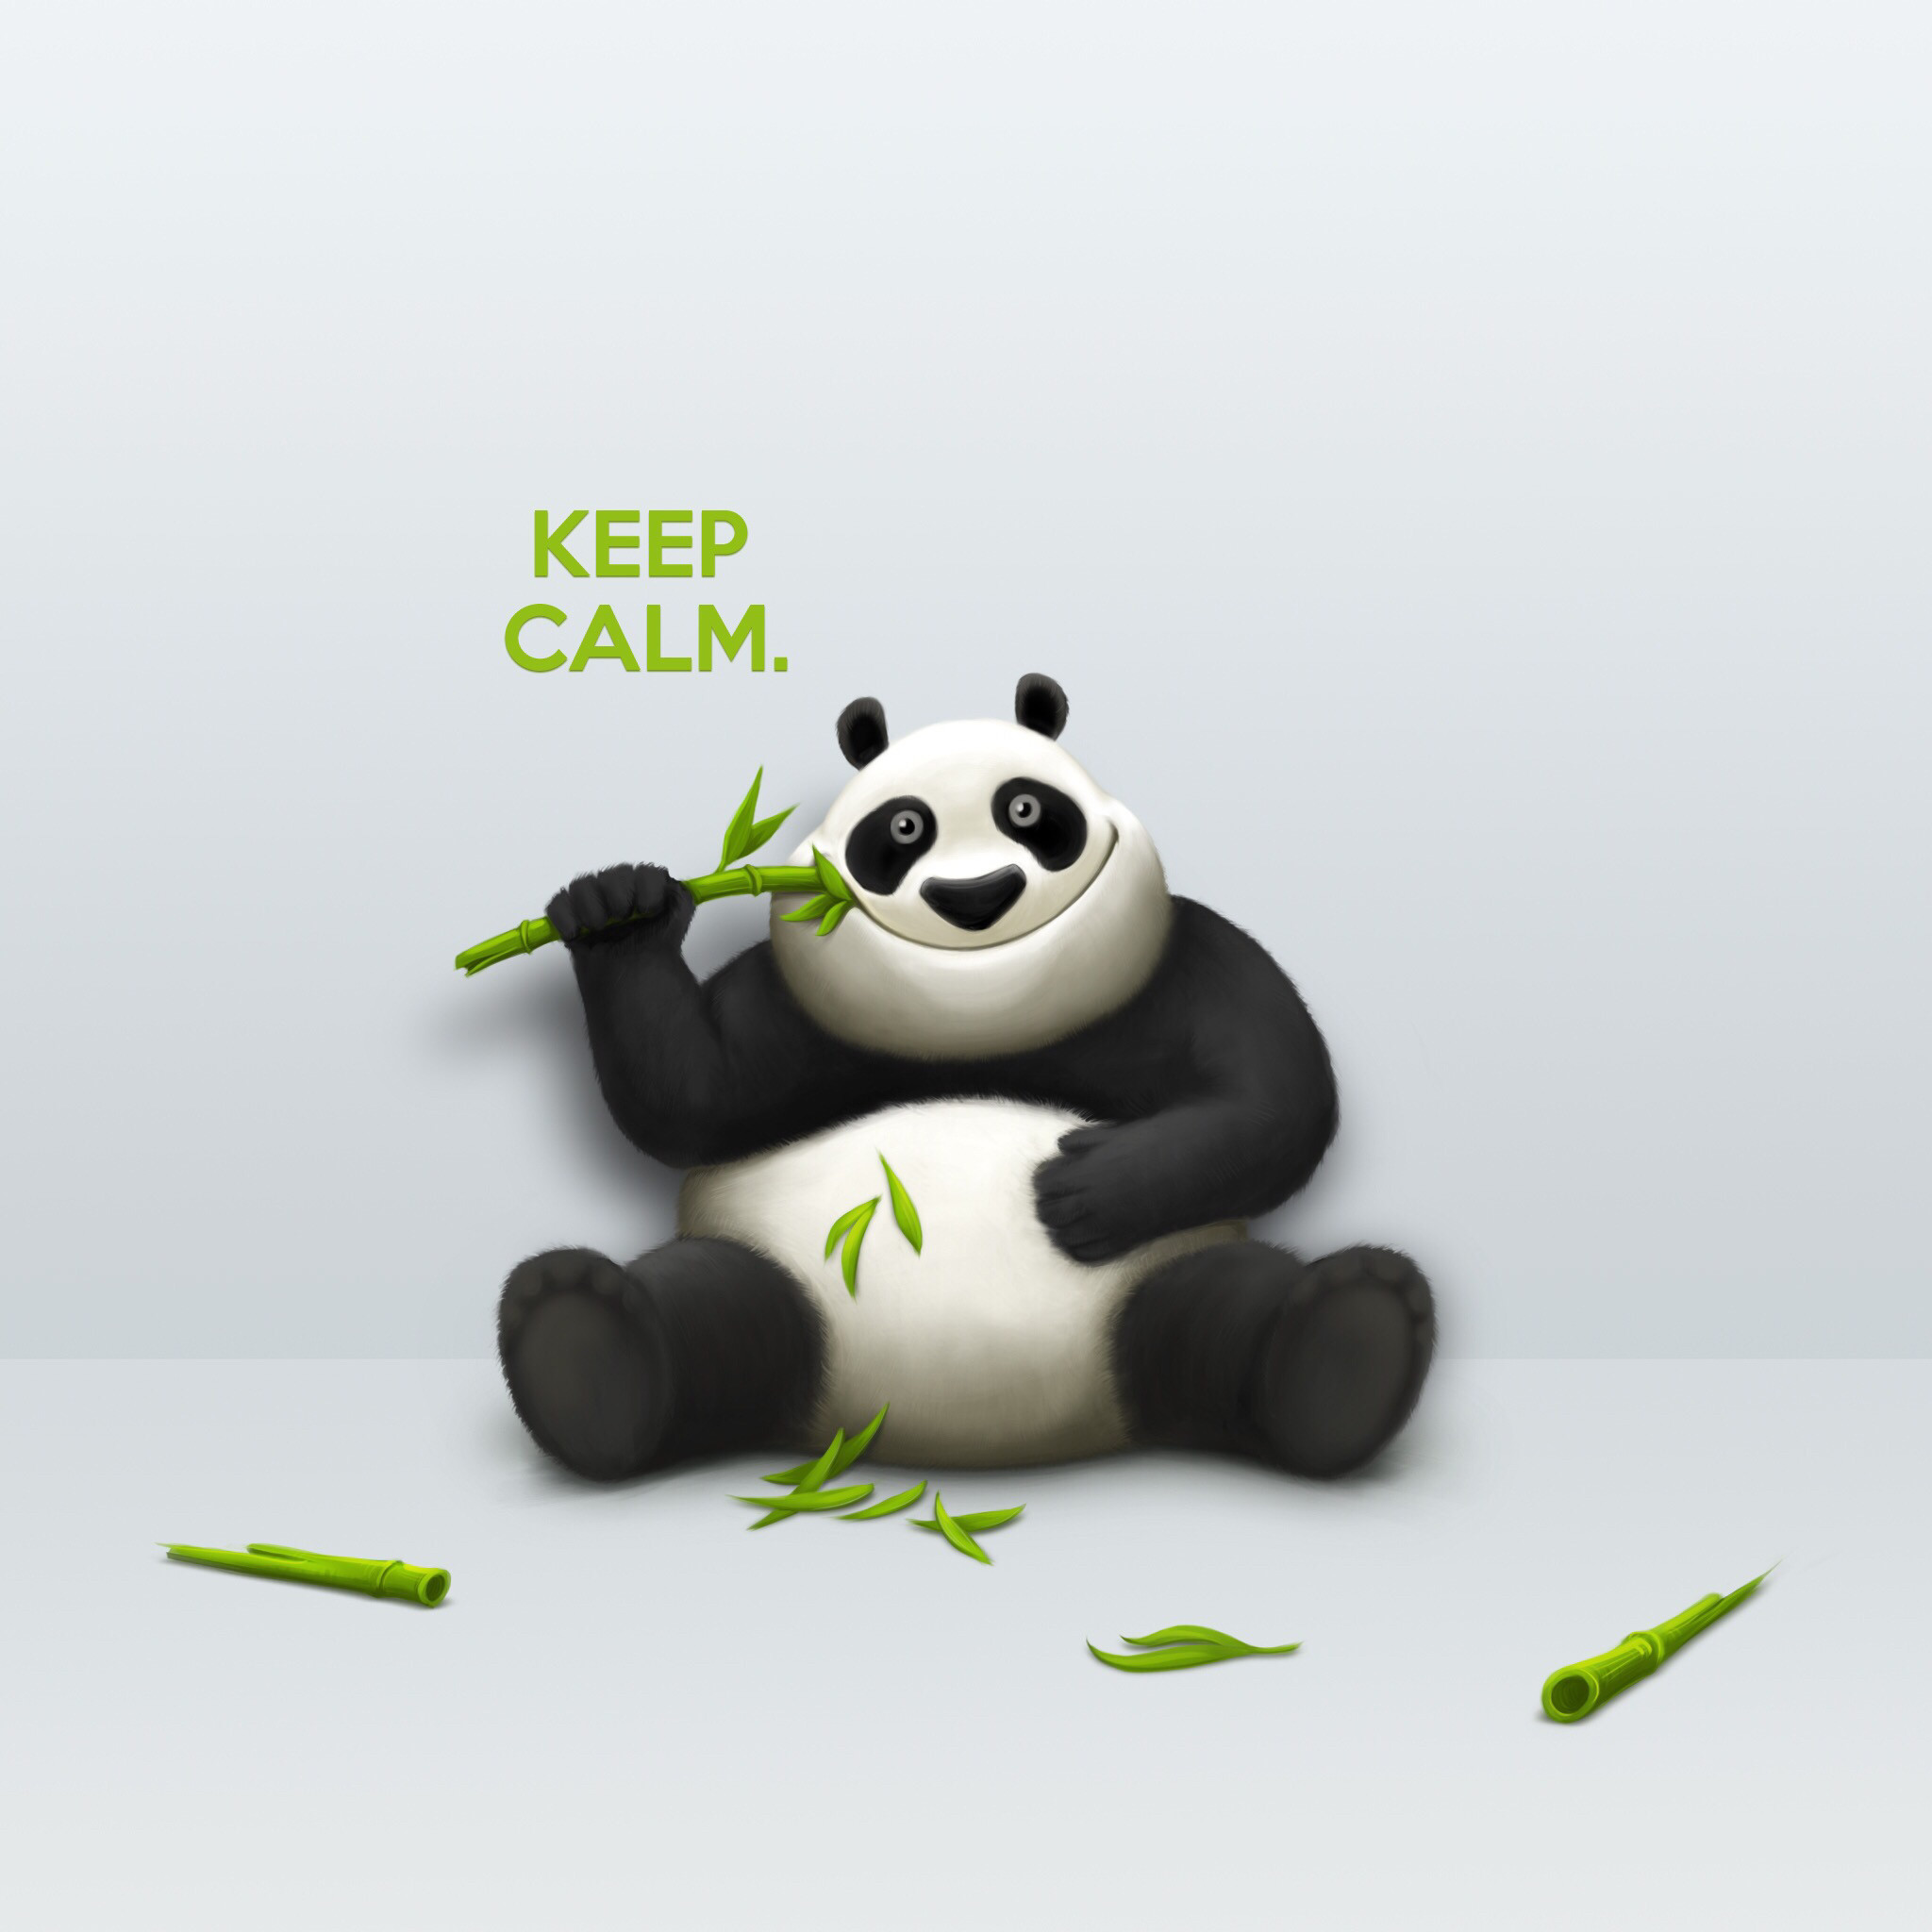 2048x2048 Don't stress,calm down and for this Mr. Panda is the best